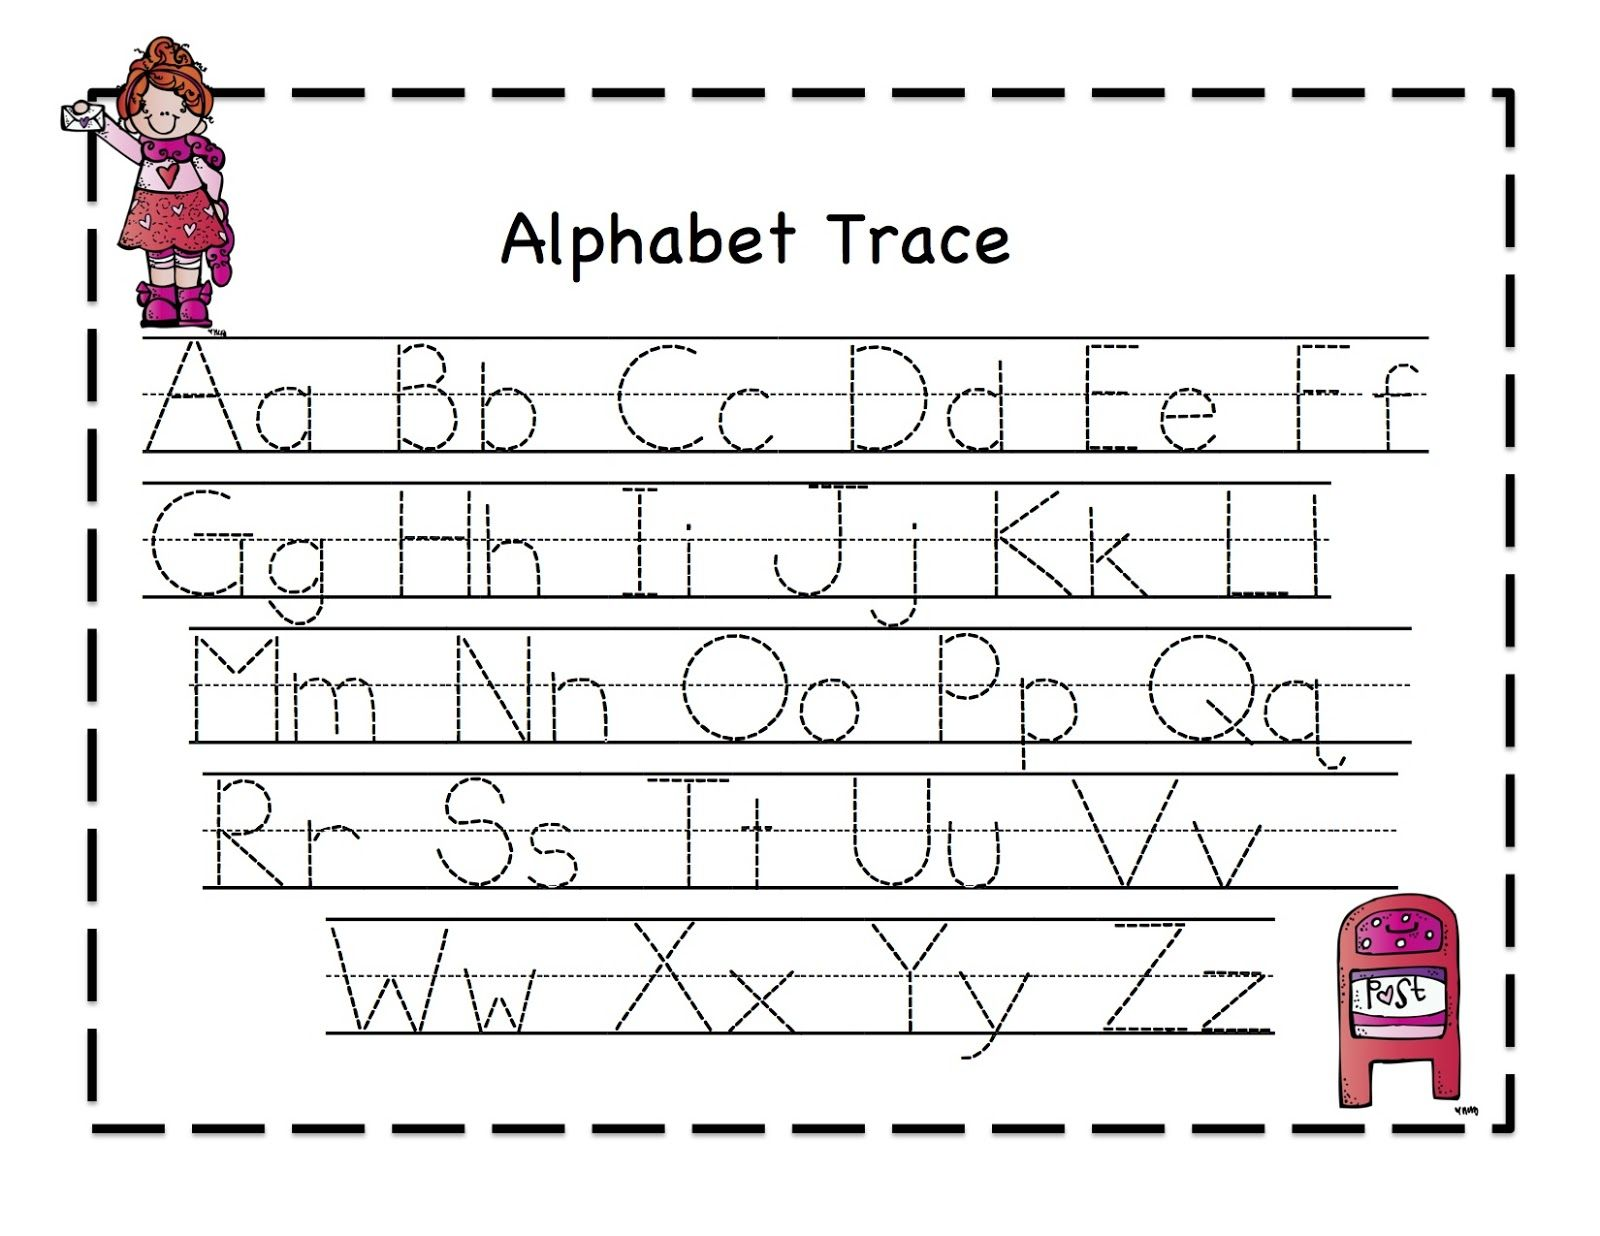 Worksheets Tracing Worksheets For Kindergarten abc tracing sheets for preschool kids kiddo shelter alphabet and shelter